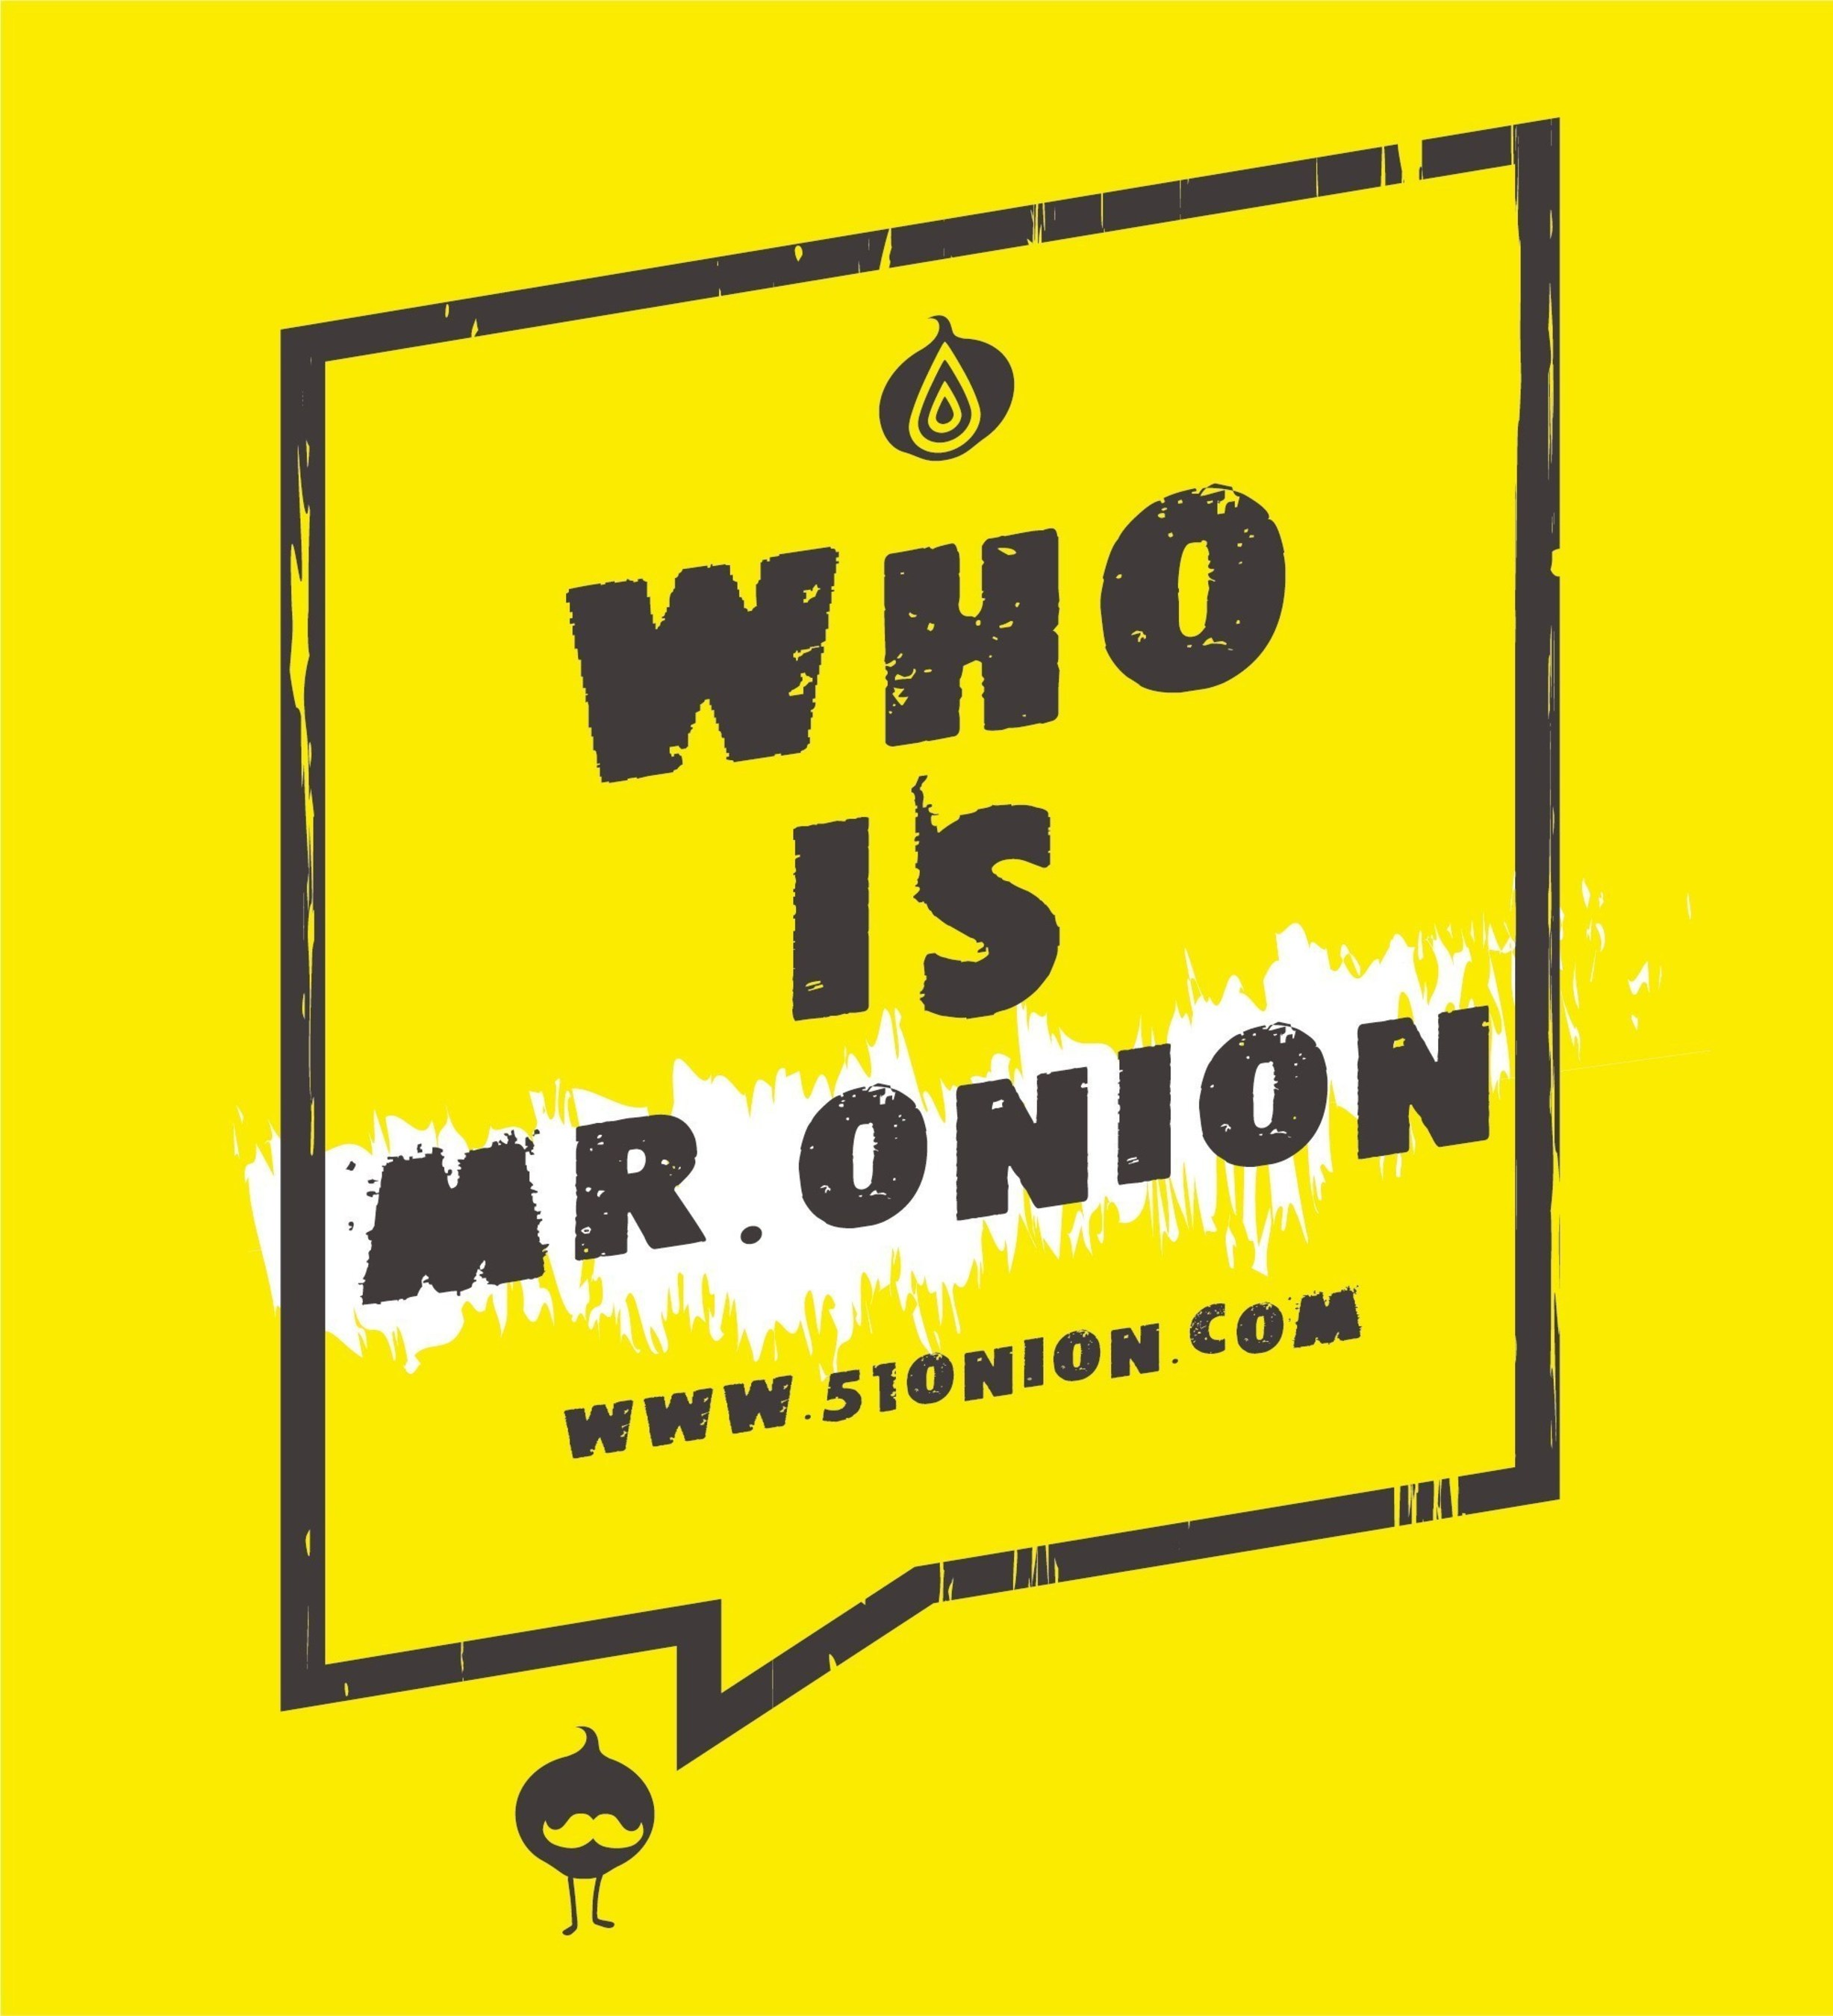 While some Chinese companies retreat from the U.S. market, Mr. Onion is COMING!